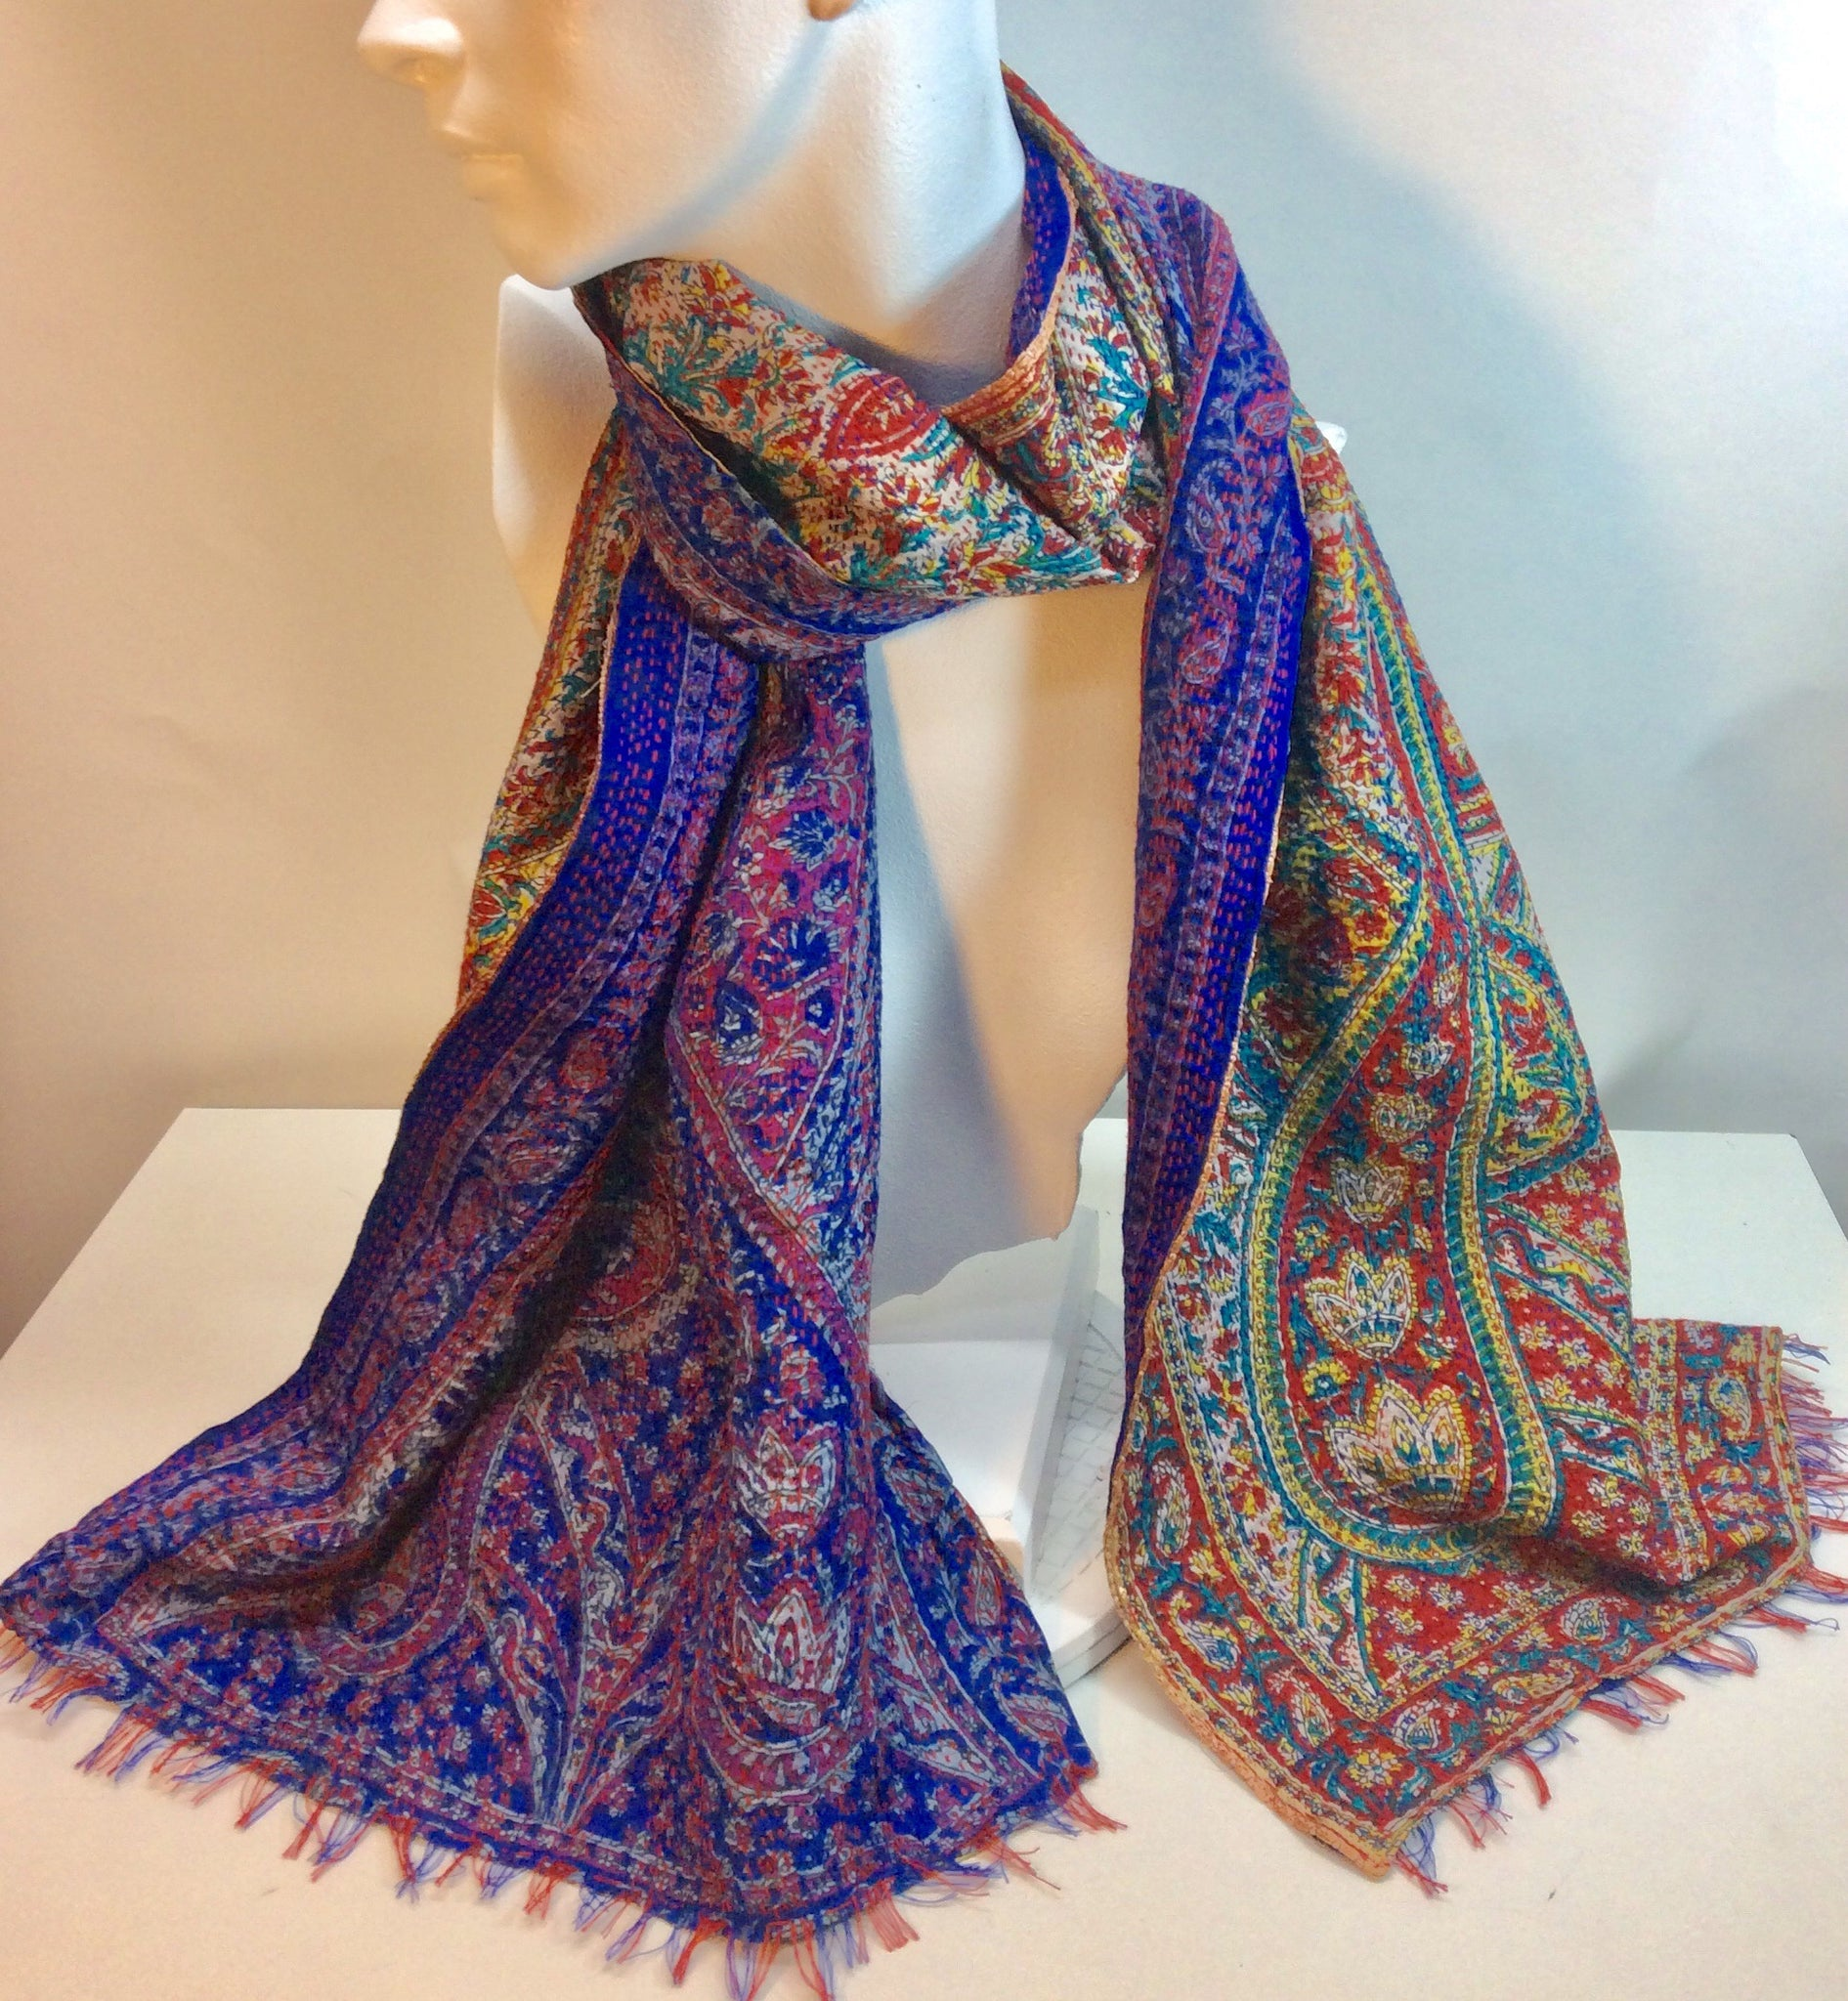 Royal blues and reds feature on this double sided silk scarf